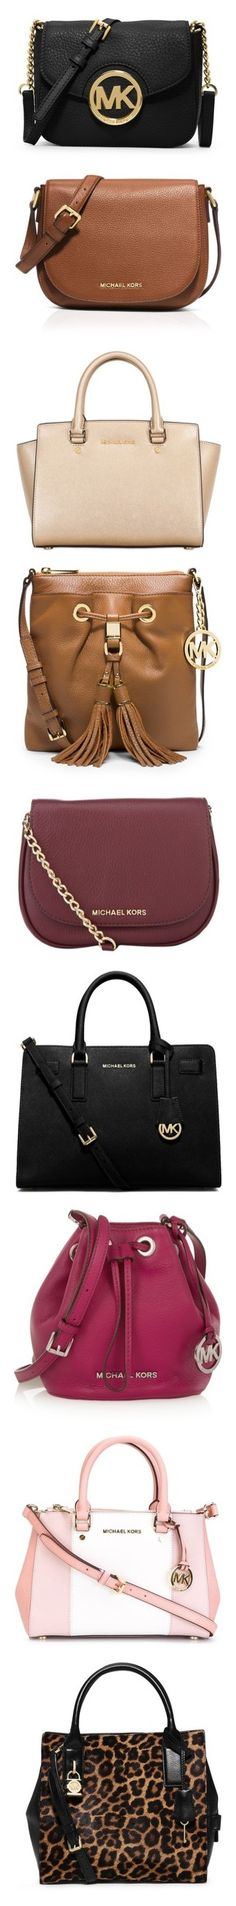 """""""Michael Kors Collection"""" by eltrada on Polyvore featuring bags, handbags, shoulder bags, purses, accessories, clutches, michael kors, black, black crossbody purse and black cross body purse"""